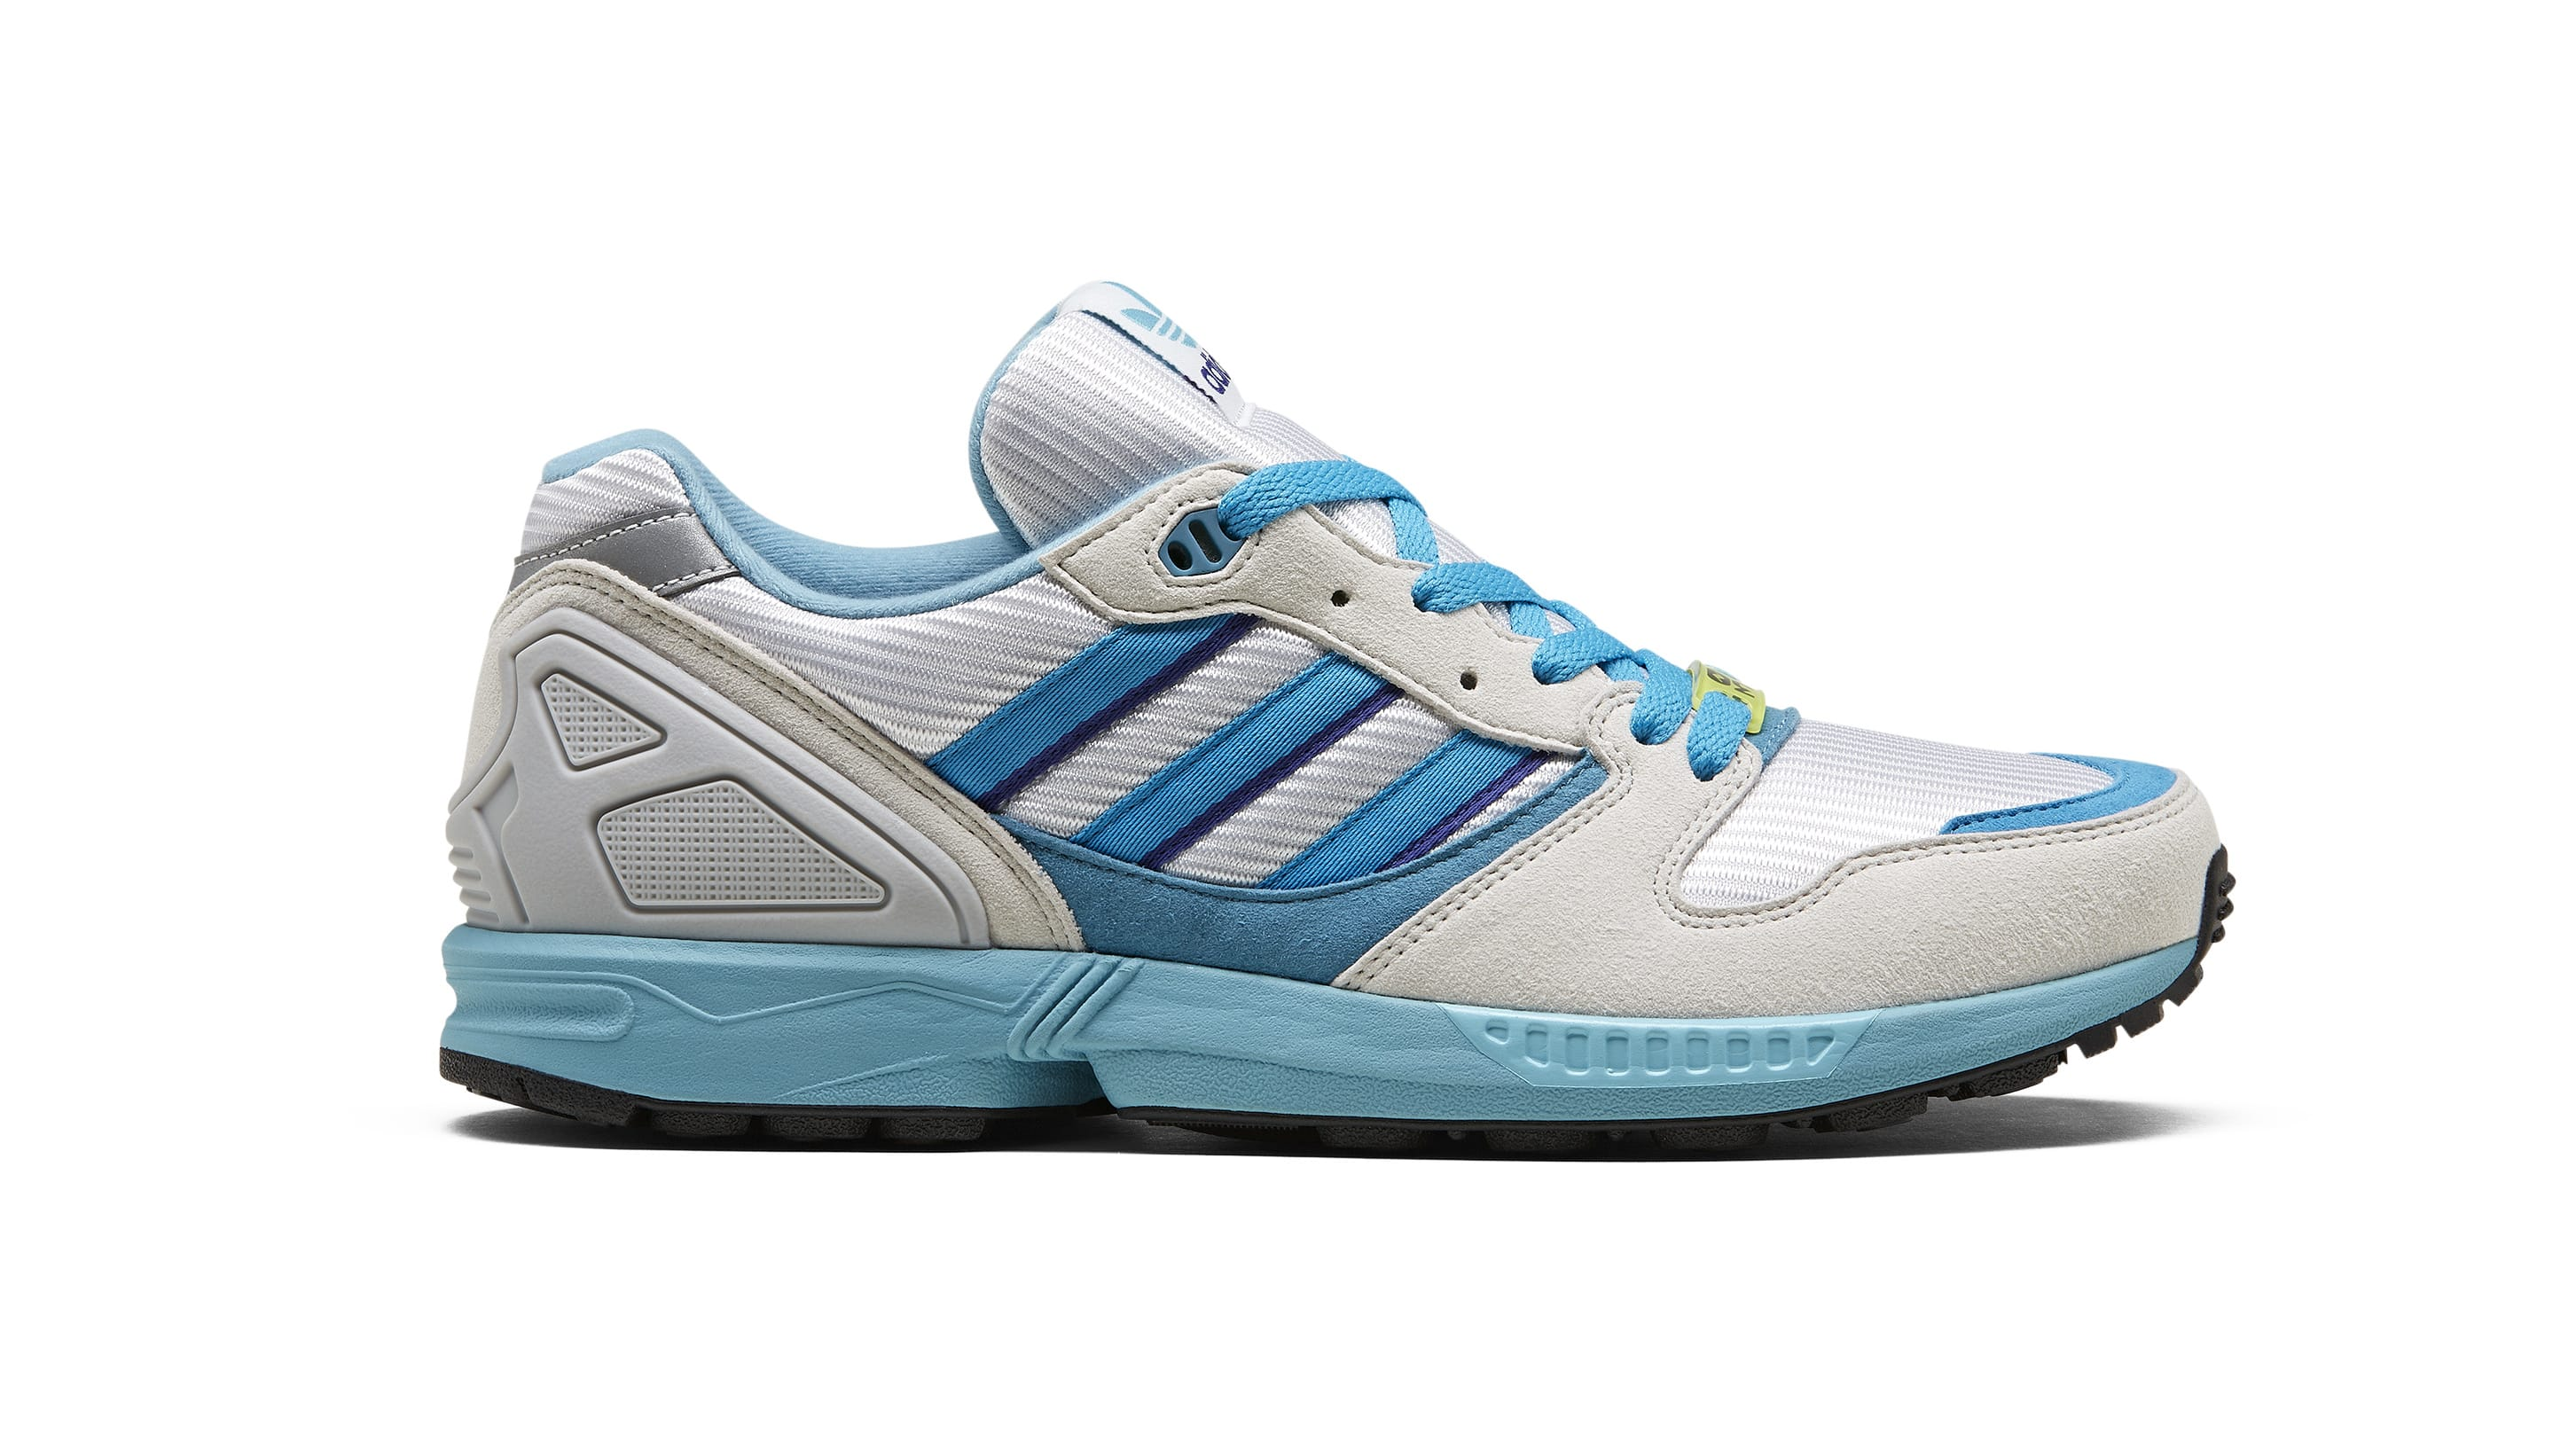 sale retailer f2c18 6961f Adidas ZX 5000 ZX 6000 ZX 7000 ZX 9000 '30 Years of Torsion ...